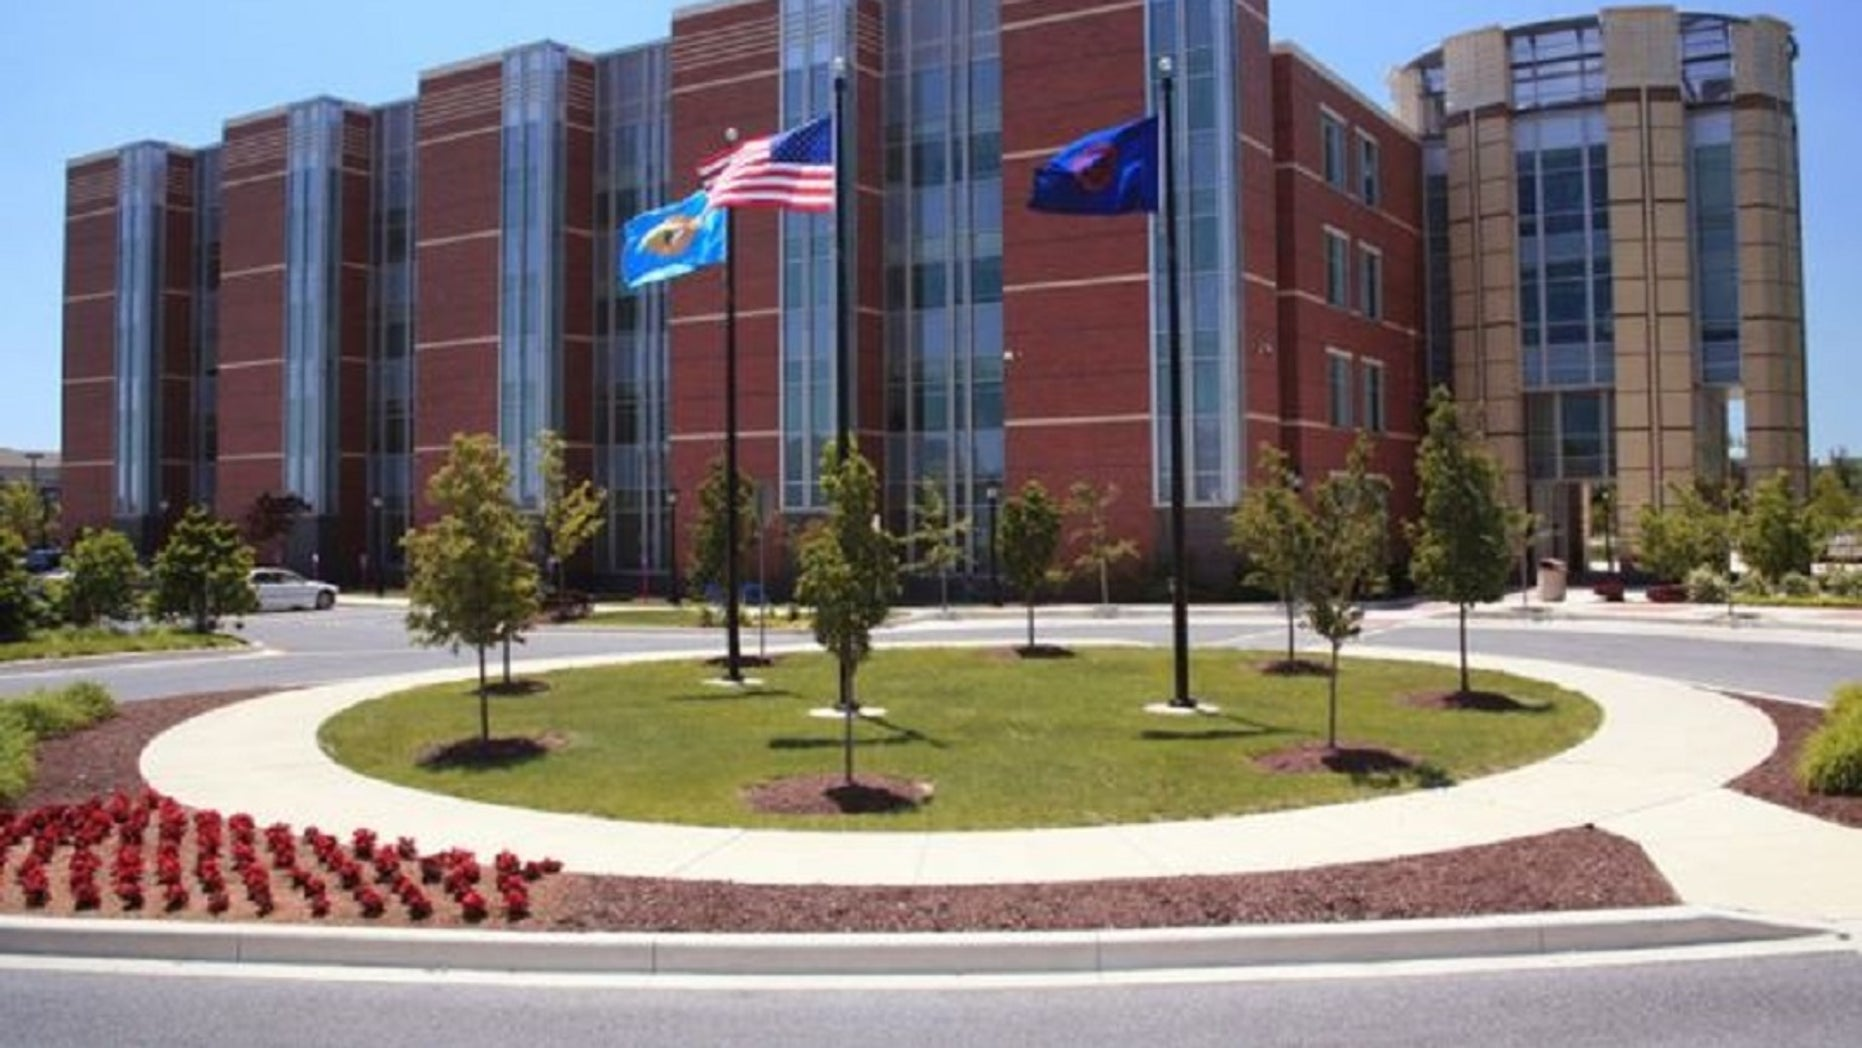 A former Delaware State University officials pleaded guilty to taking bribes in exchange for classifying students as in-state residents.